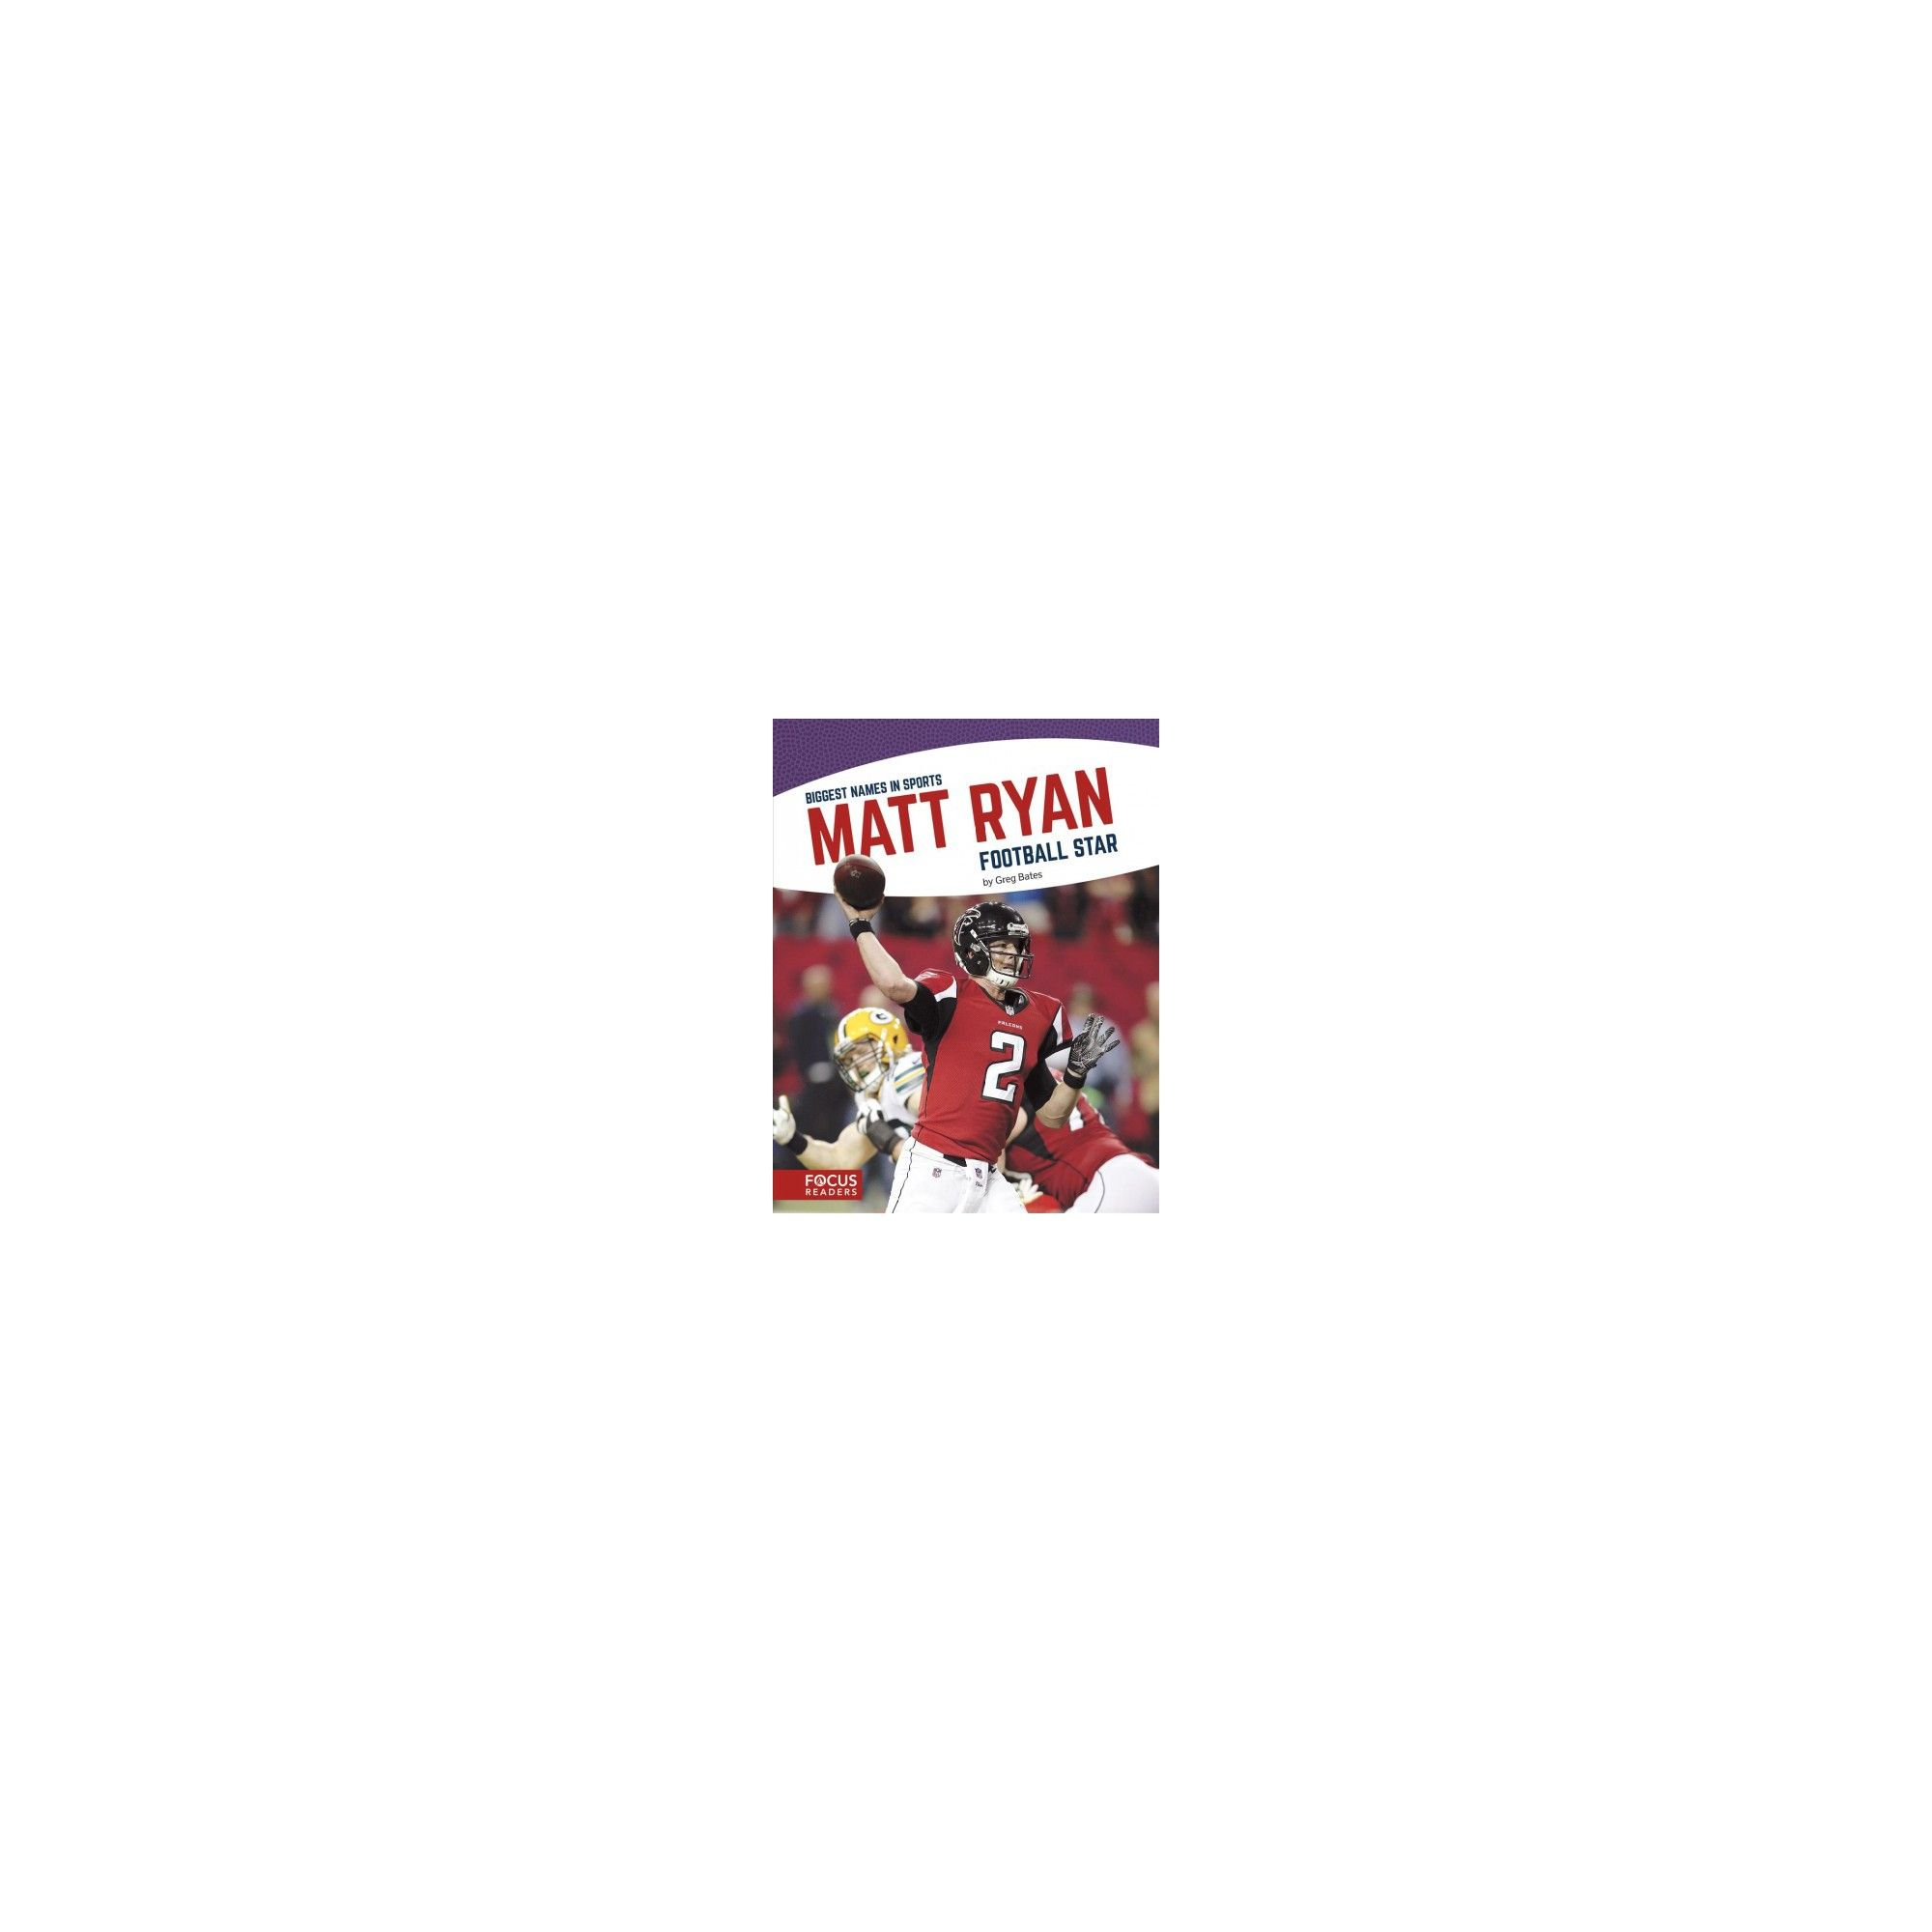 Matt Ryan Football Star Paperback Greg Bates Matt Ryan